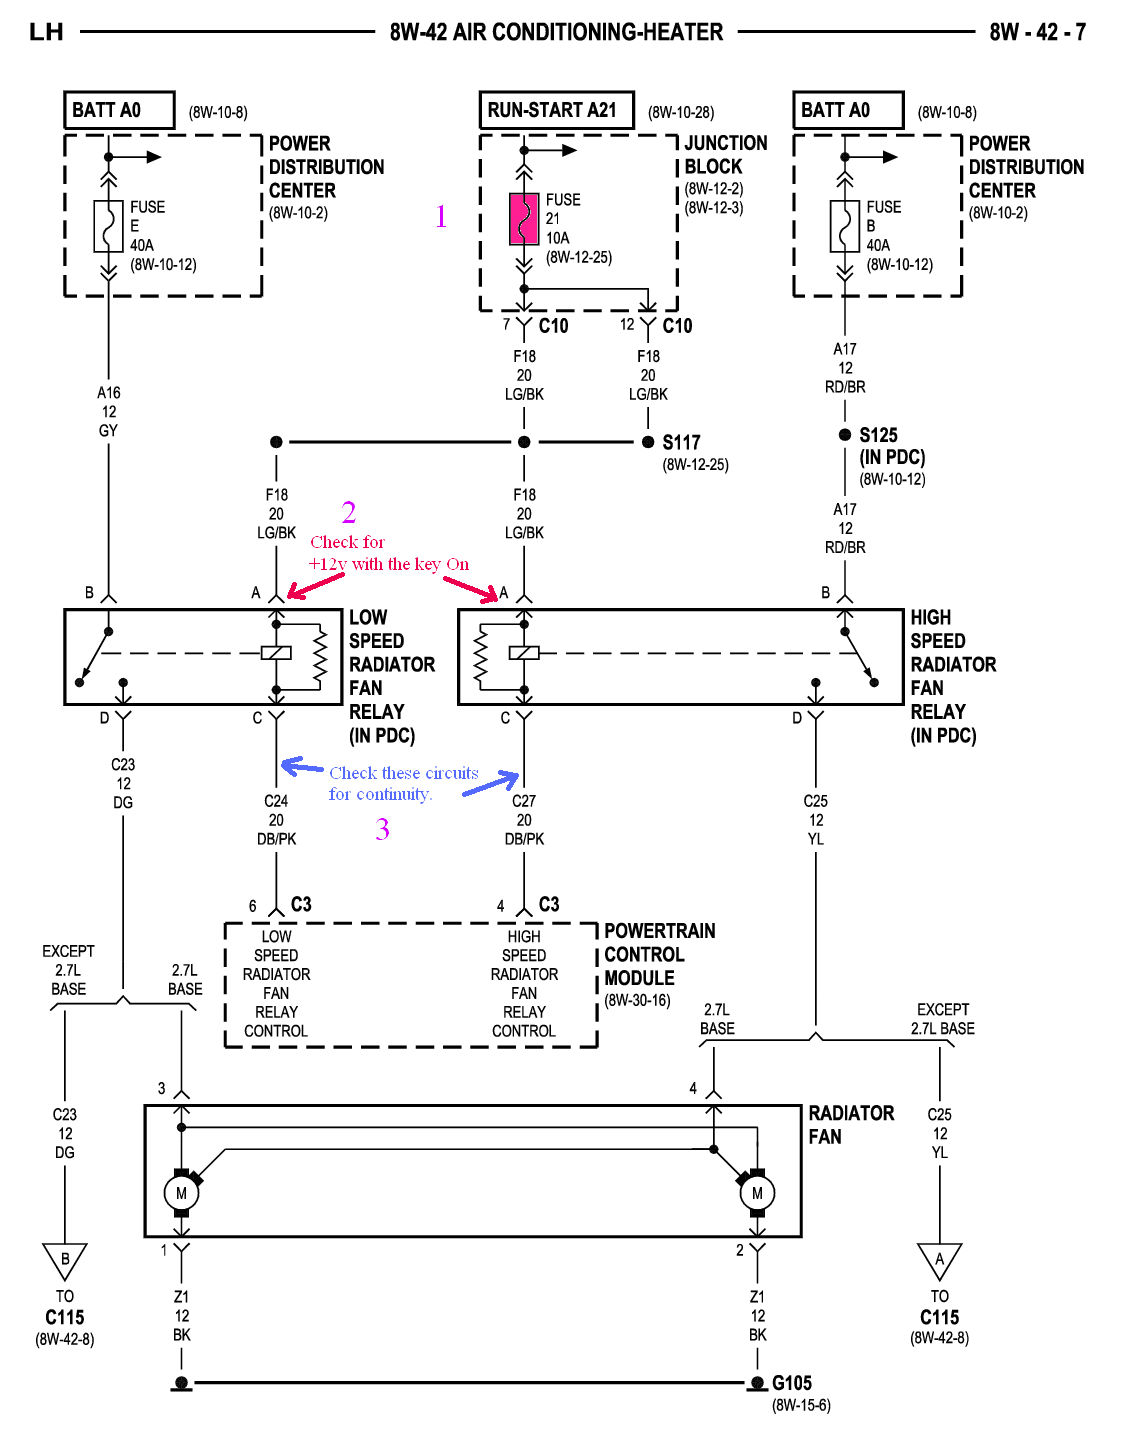 2002 Chrysler Sebring Ignition Wiring Diagram Will Ford Festiva Free Download Fuse Box Image Details Rh Motogurumag Com 2007